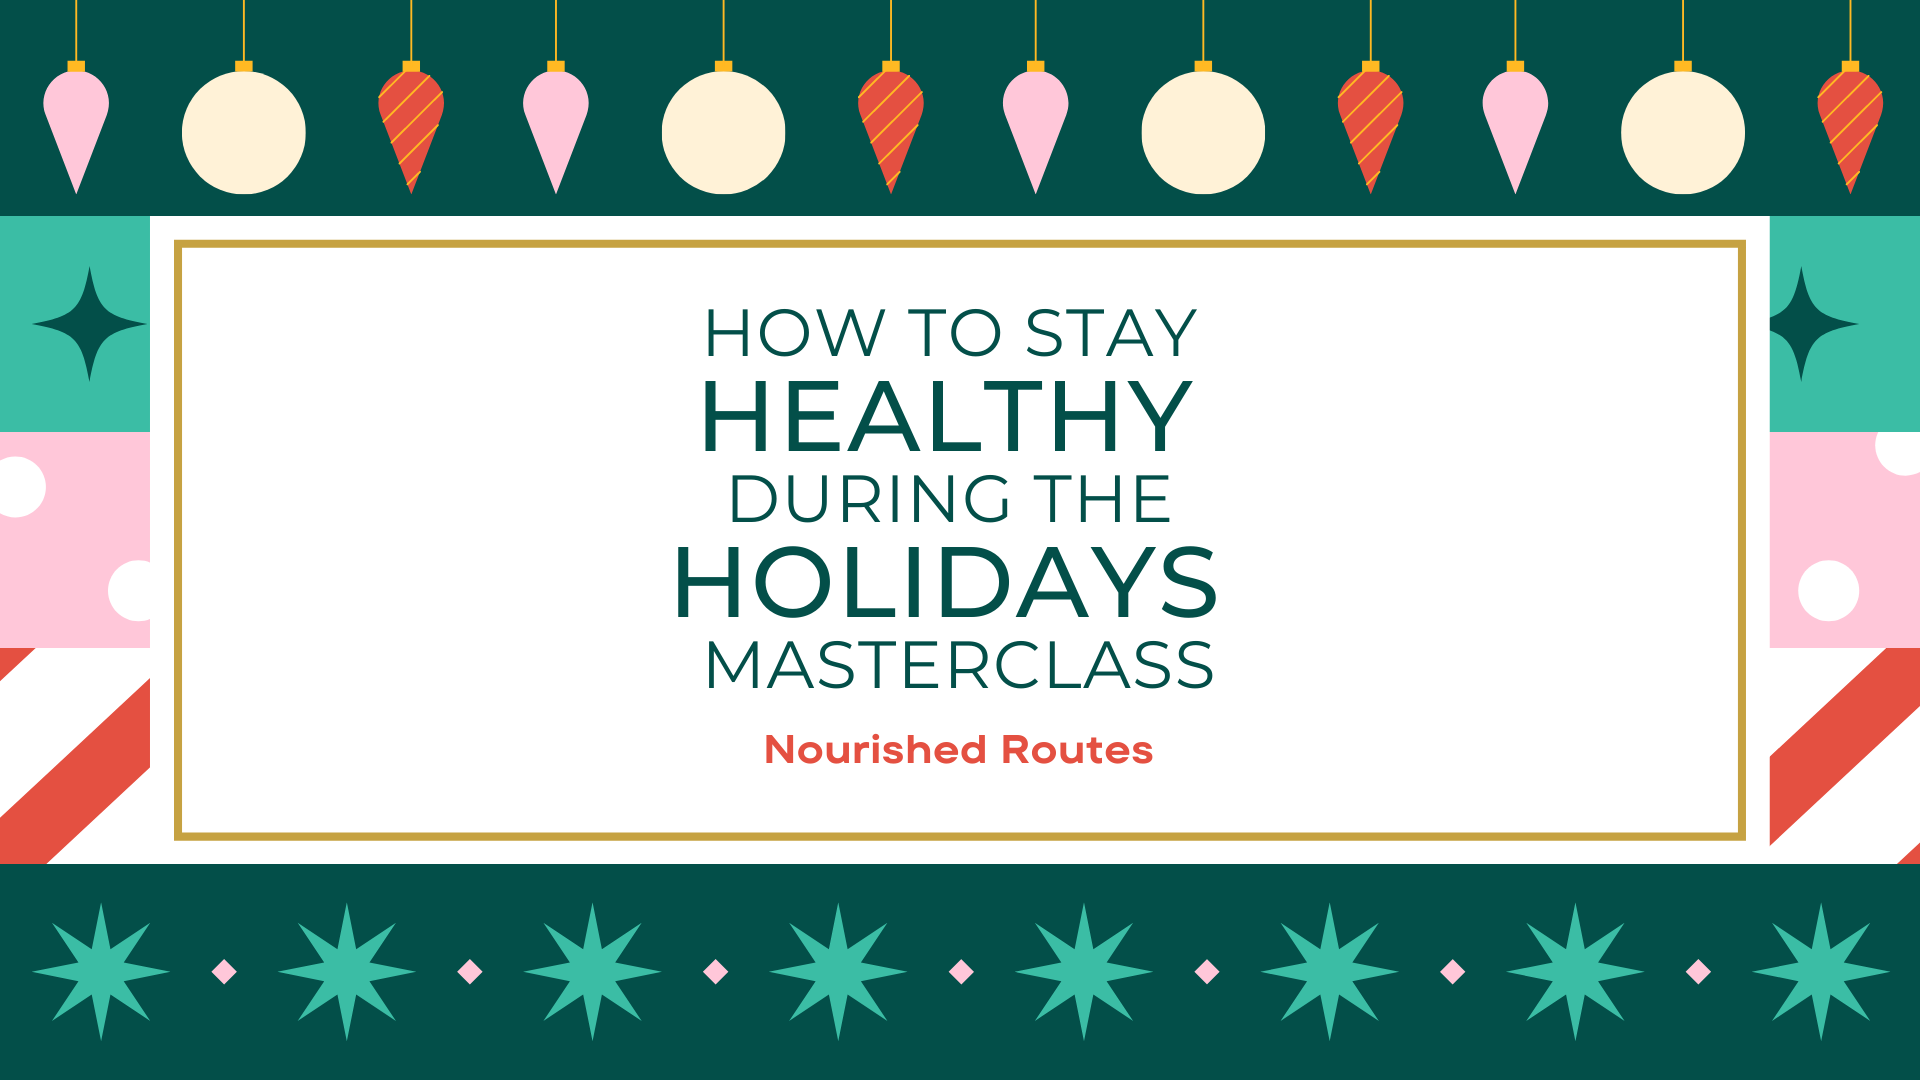 Healthy Eating During the Holidays Masterclass